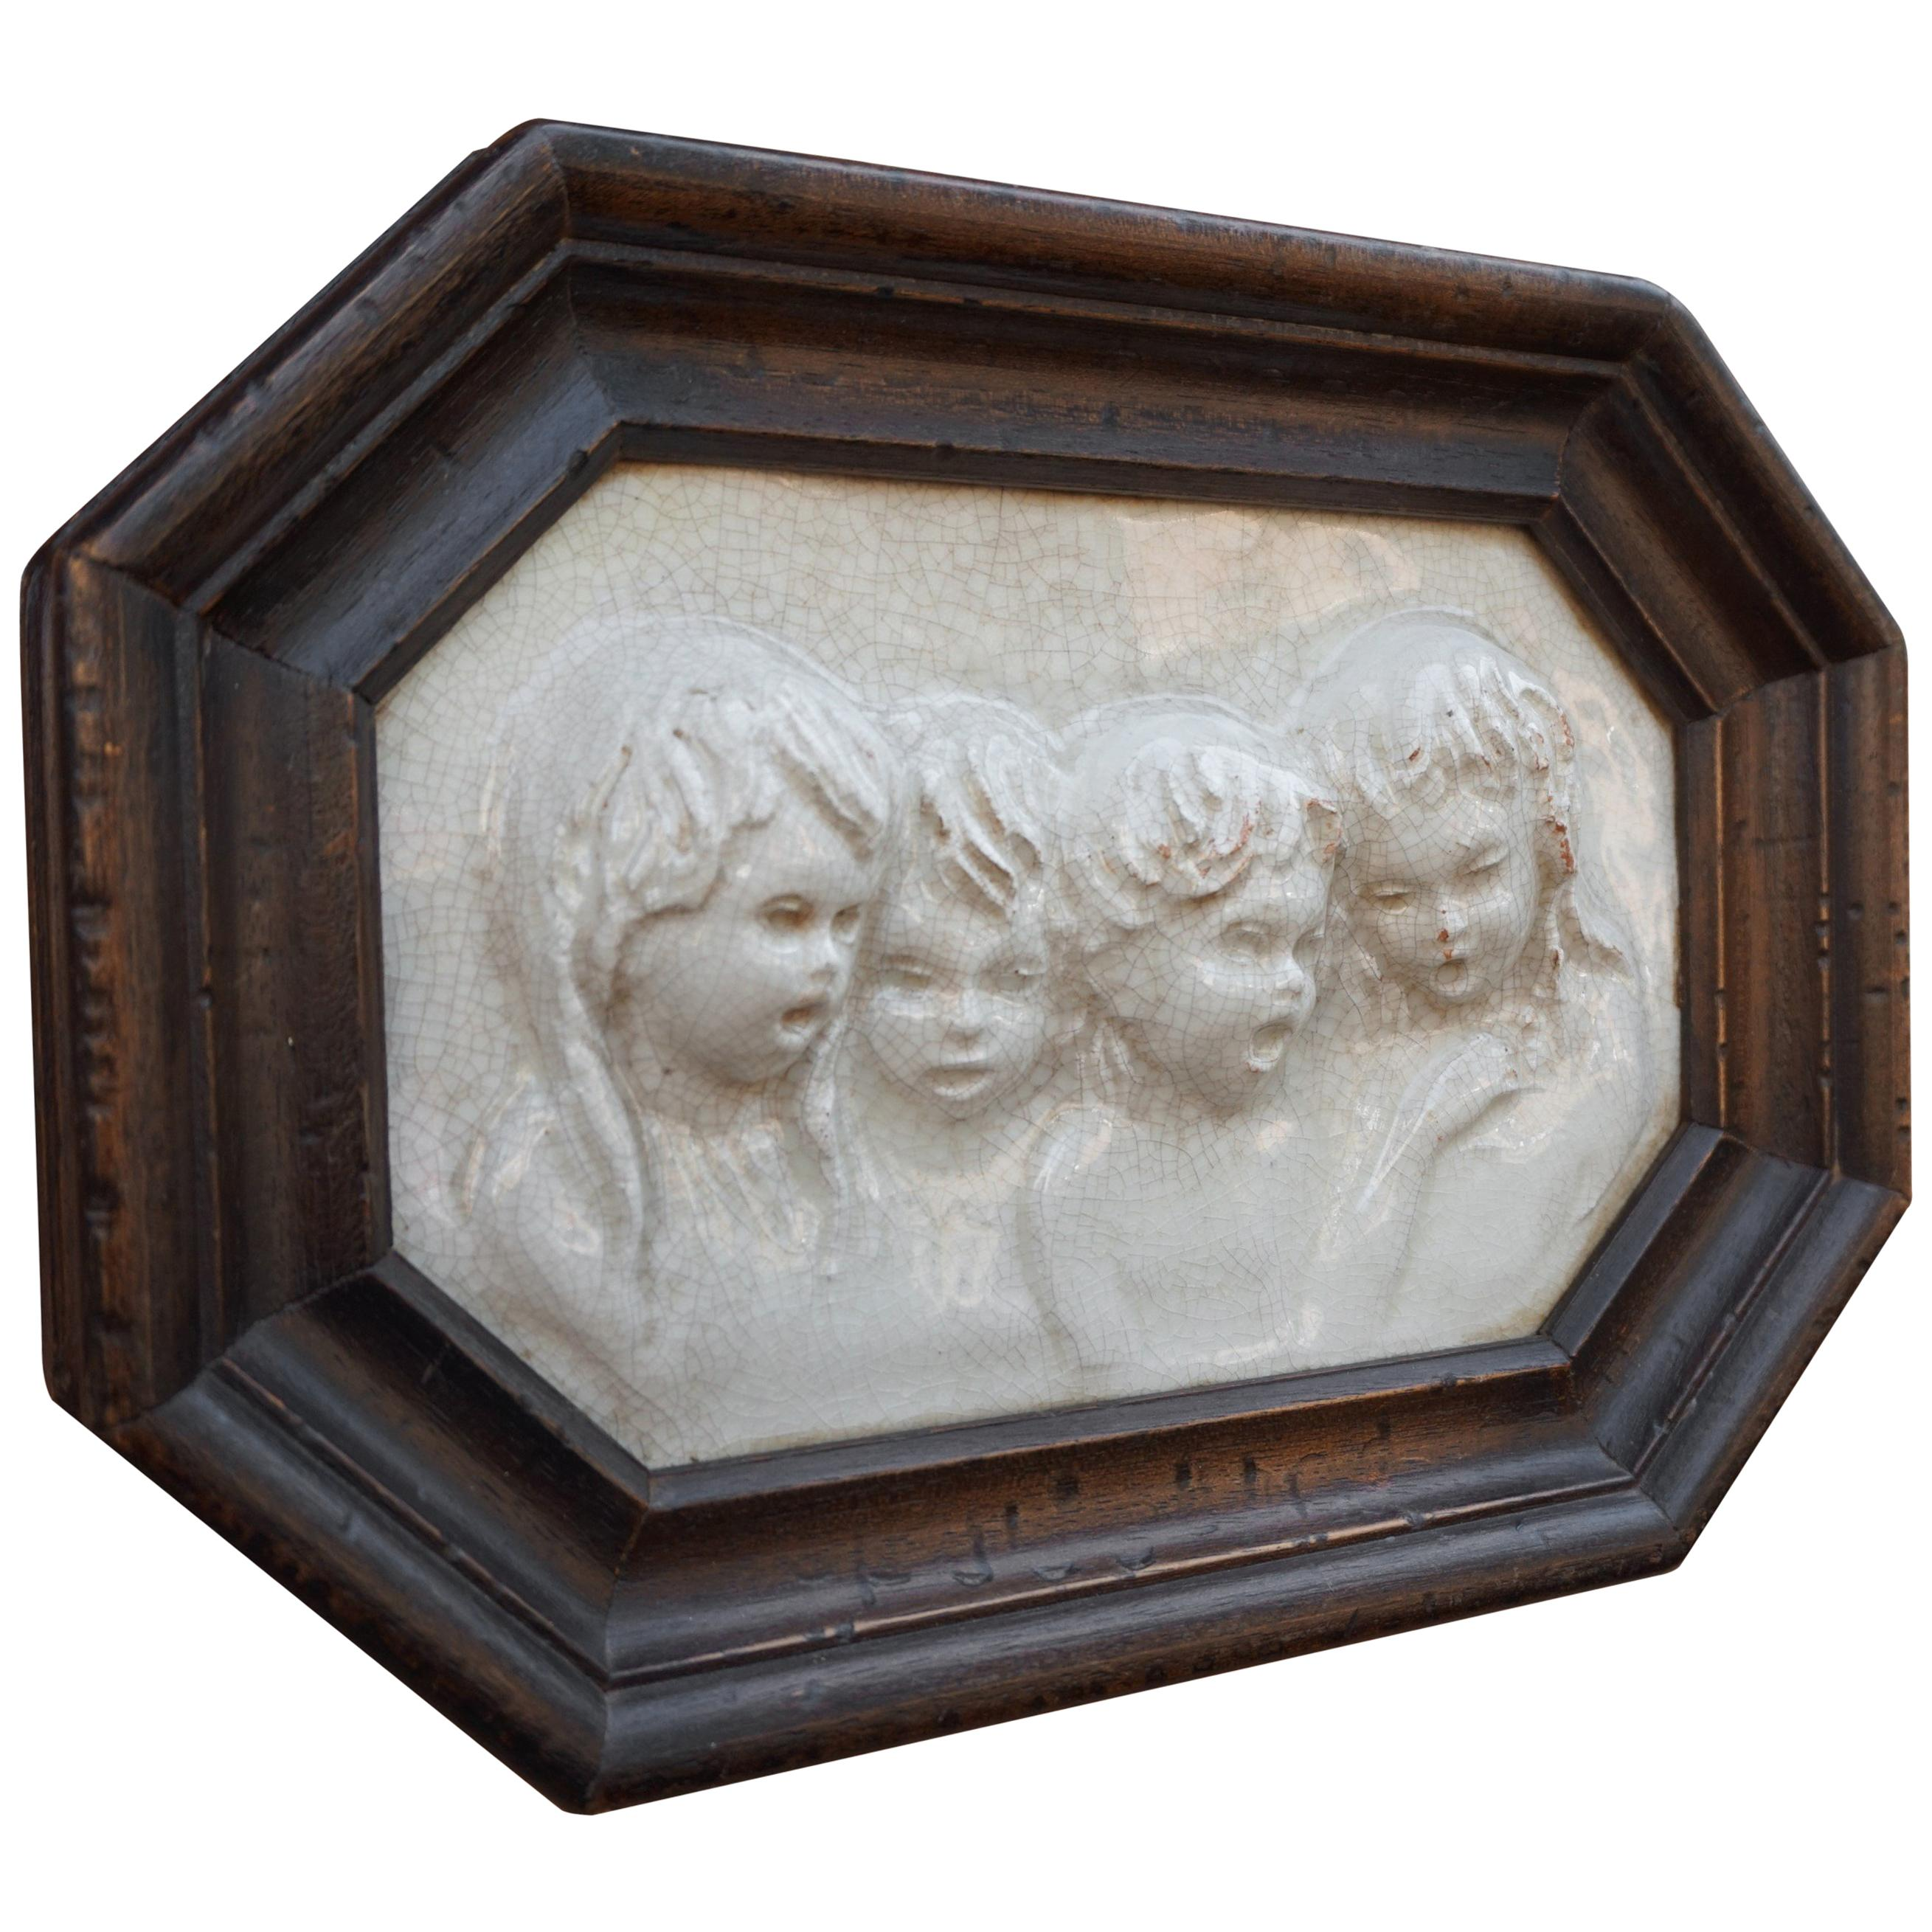 Antique Tile in Frame with Devout Singing Angelic Children Sculptures in Relief